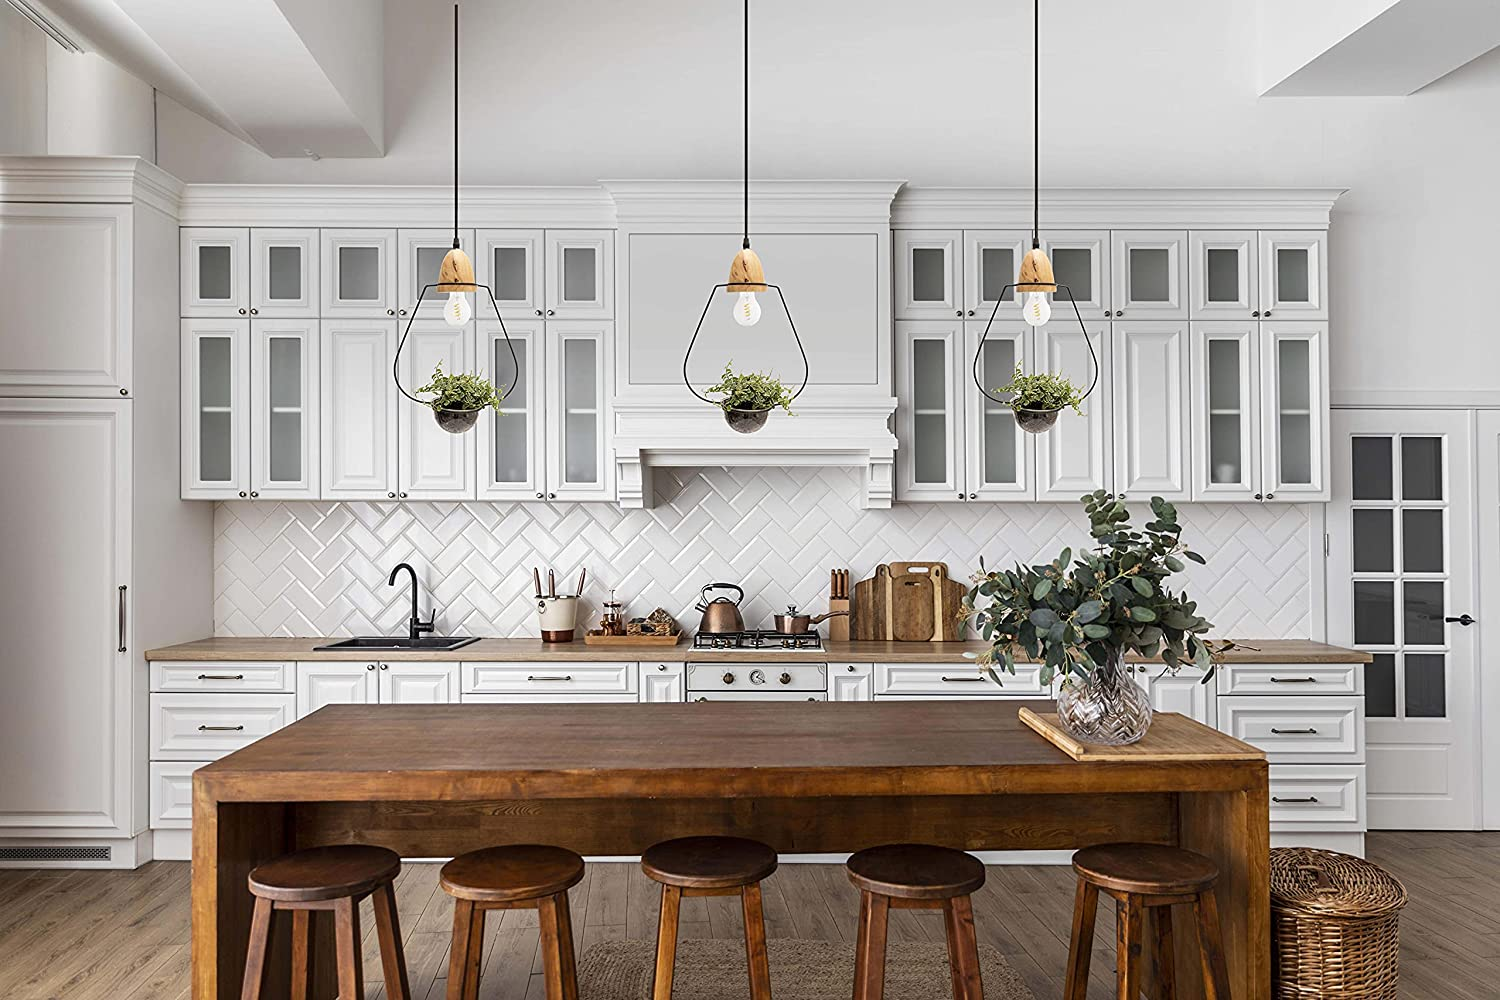 Pendant Light for Kitchen Island Dining Room Lighting Fixtures Hanging with  Plant Pot and Adjustable Wire up to 9